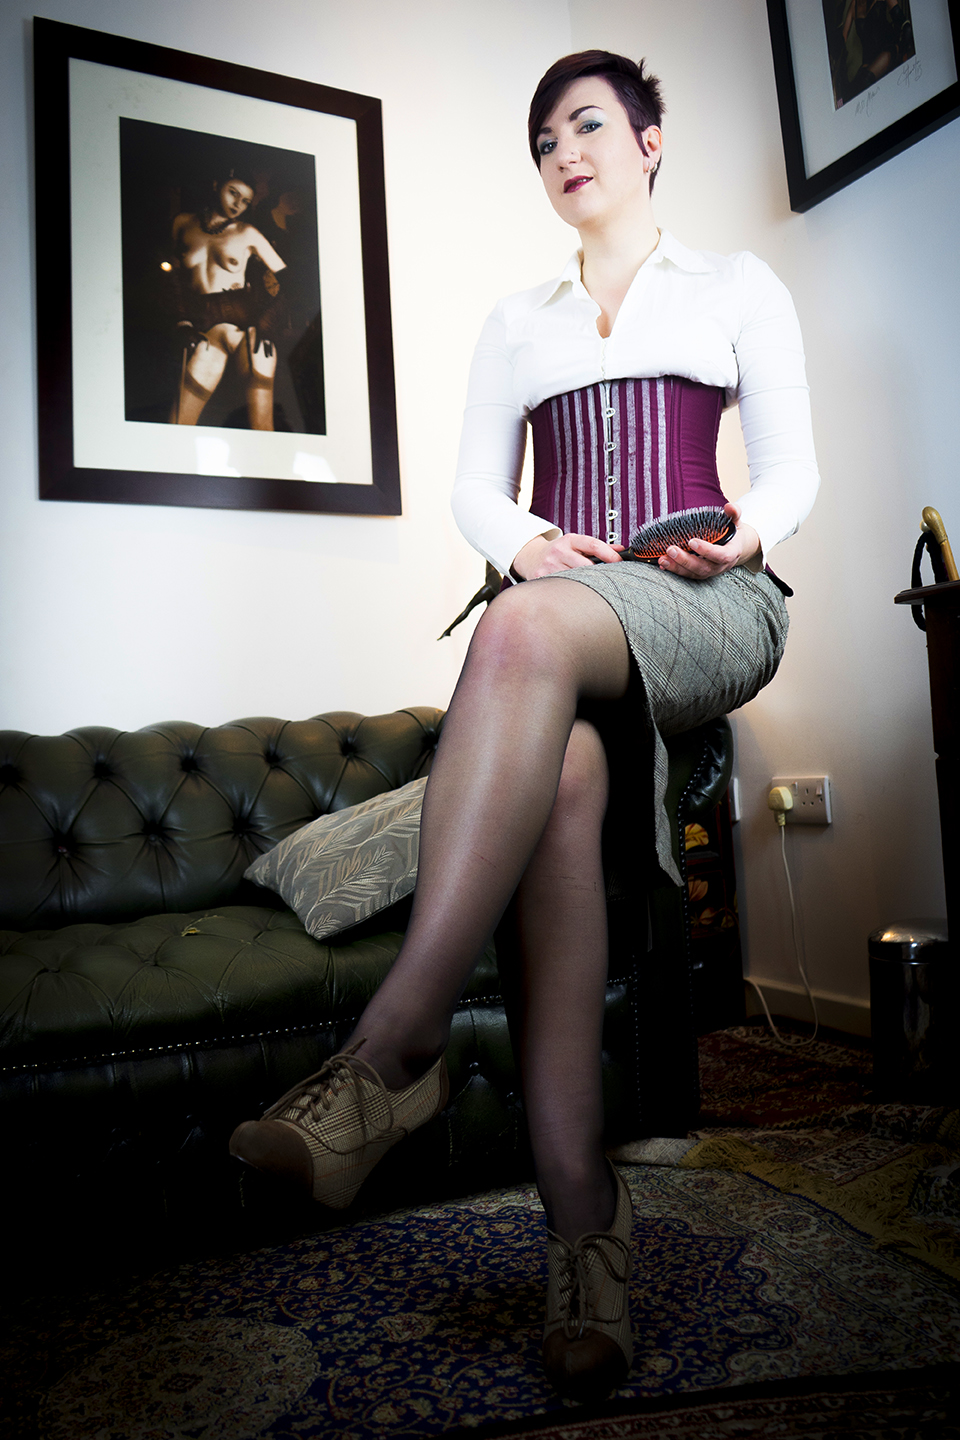 Spanking and corporal punishment sessions with Pandora Blake